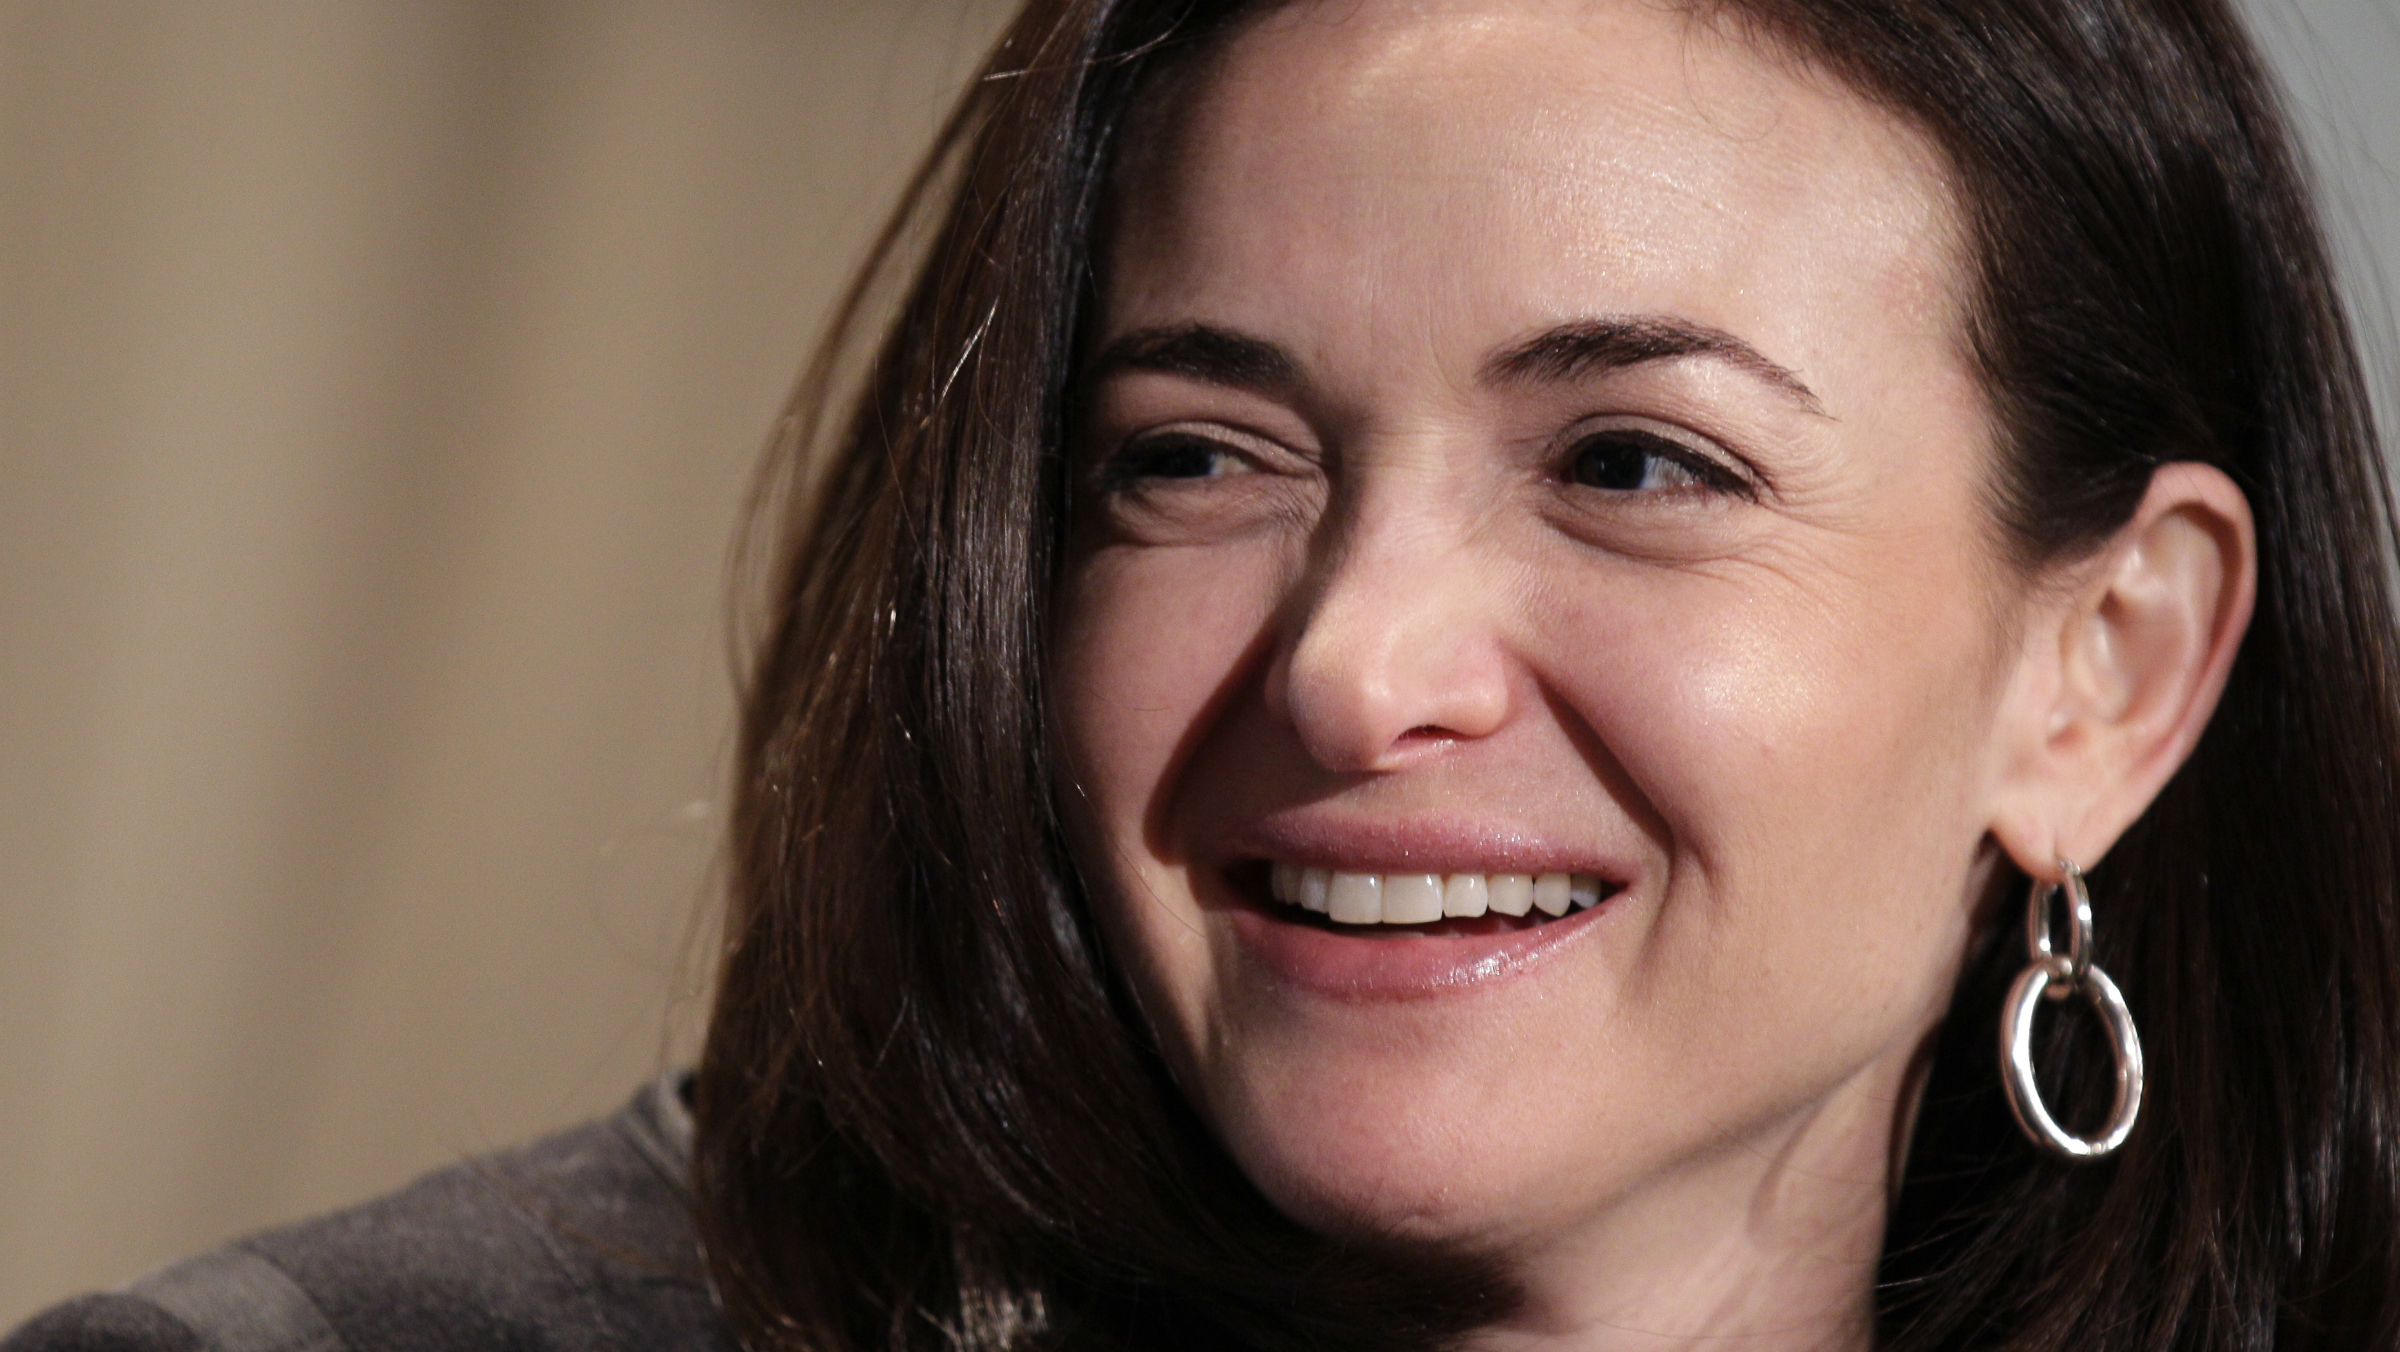 """In this Thursday, April 7, 2011, file photo, Sheryl Sandberg, Facebook's chief operating officer, speaks at a luncheon for the American Society of News Editors in San Diego. Sandberg's book """"Lean In: Women, Work, and the Will to Lead"""" goes on sale Monday, March 11, 2013 amid criticism that she's too successful and rich to lead a movement. But she says her focus remains on spurring action and progress among women."""